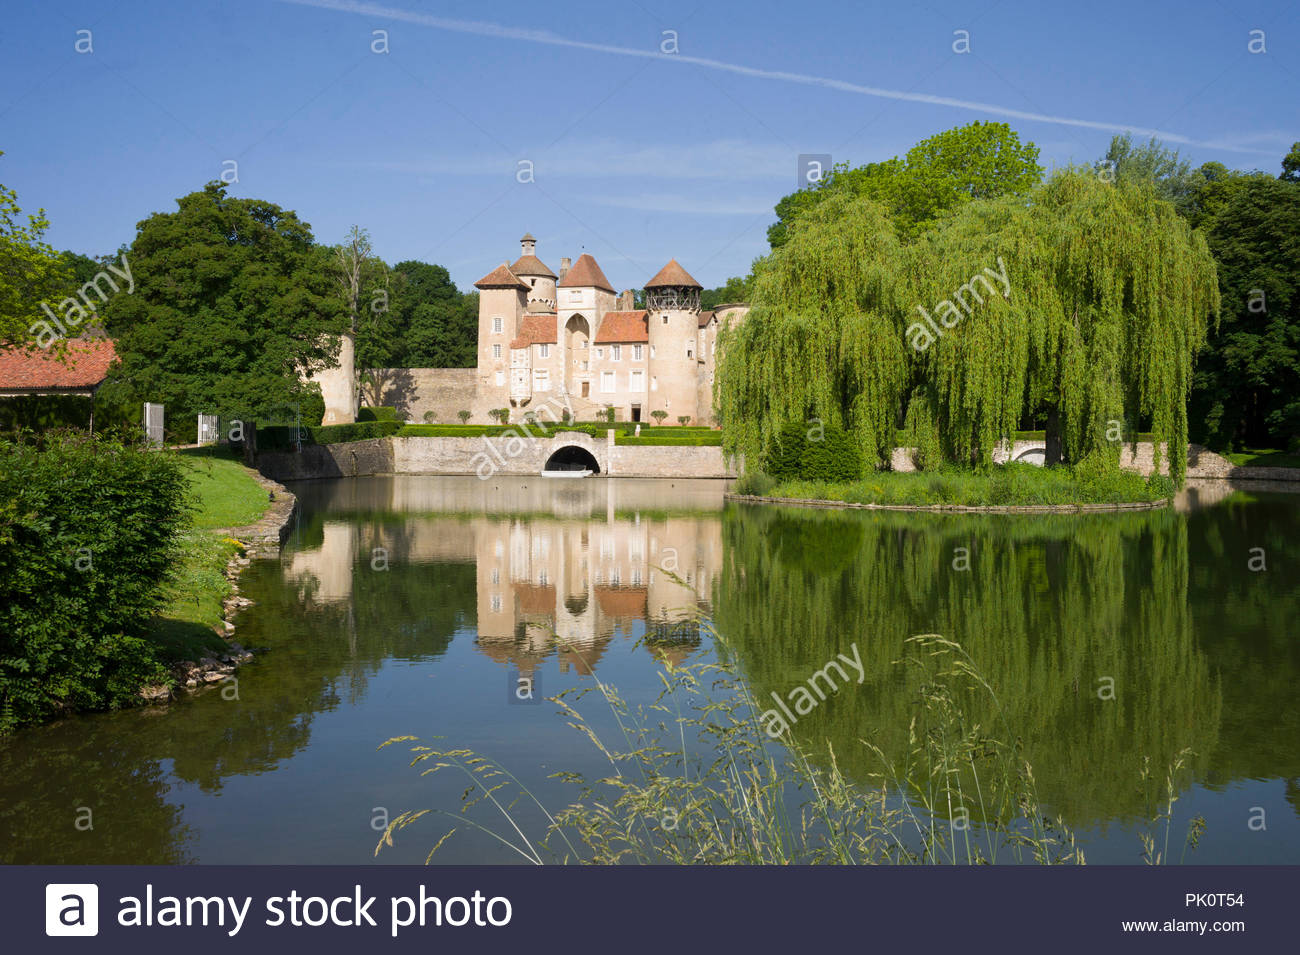 A chateau in Burgundy, France with an ornamental lake Stock Photo